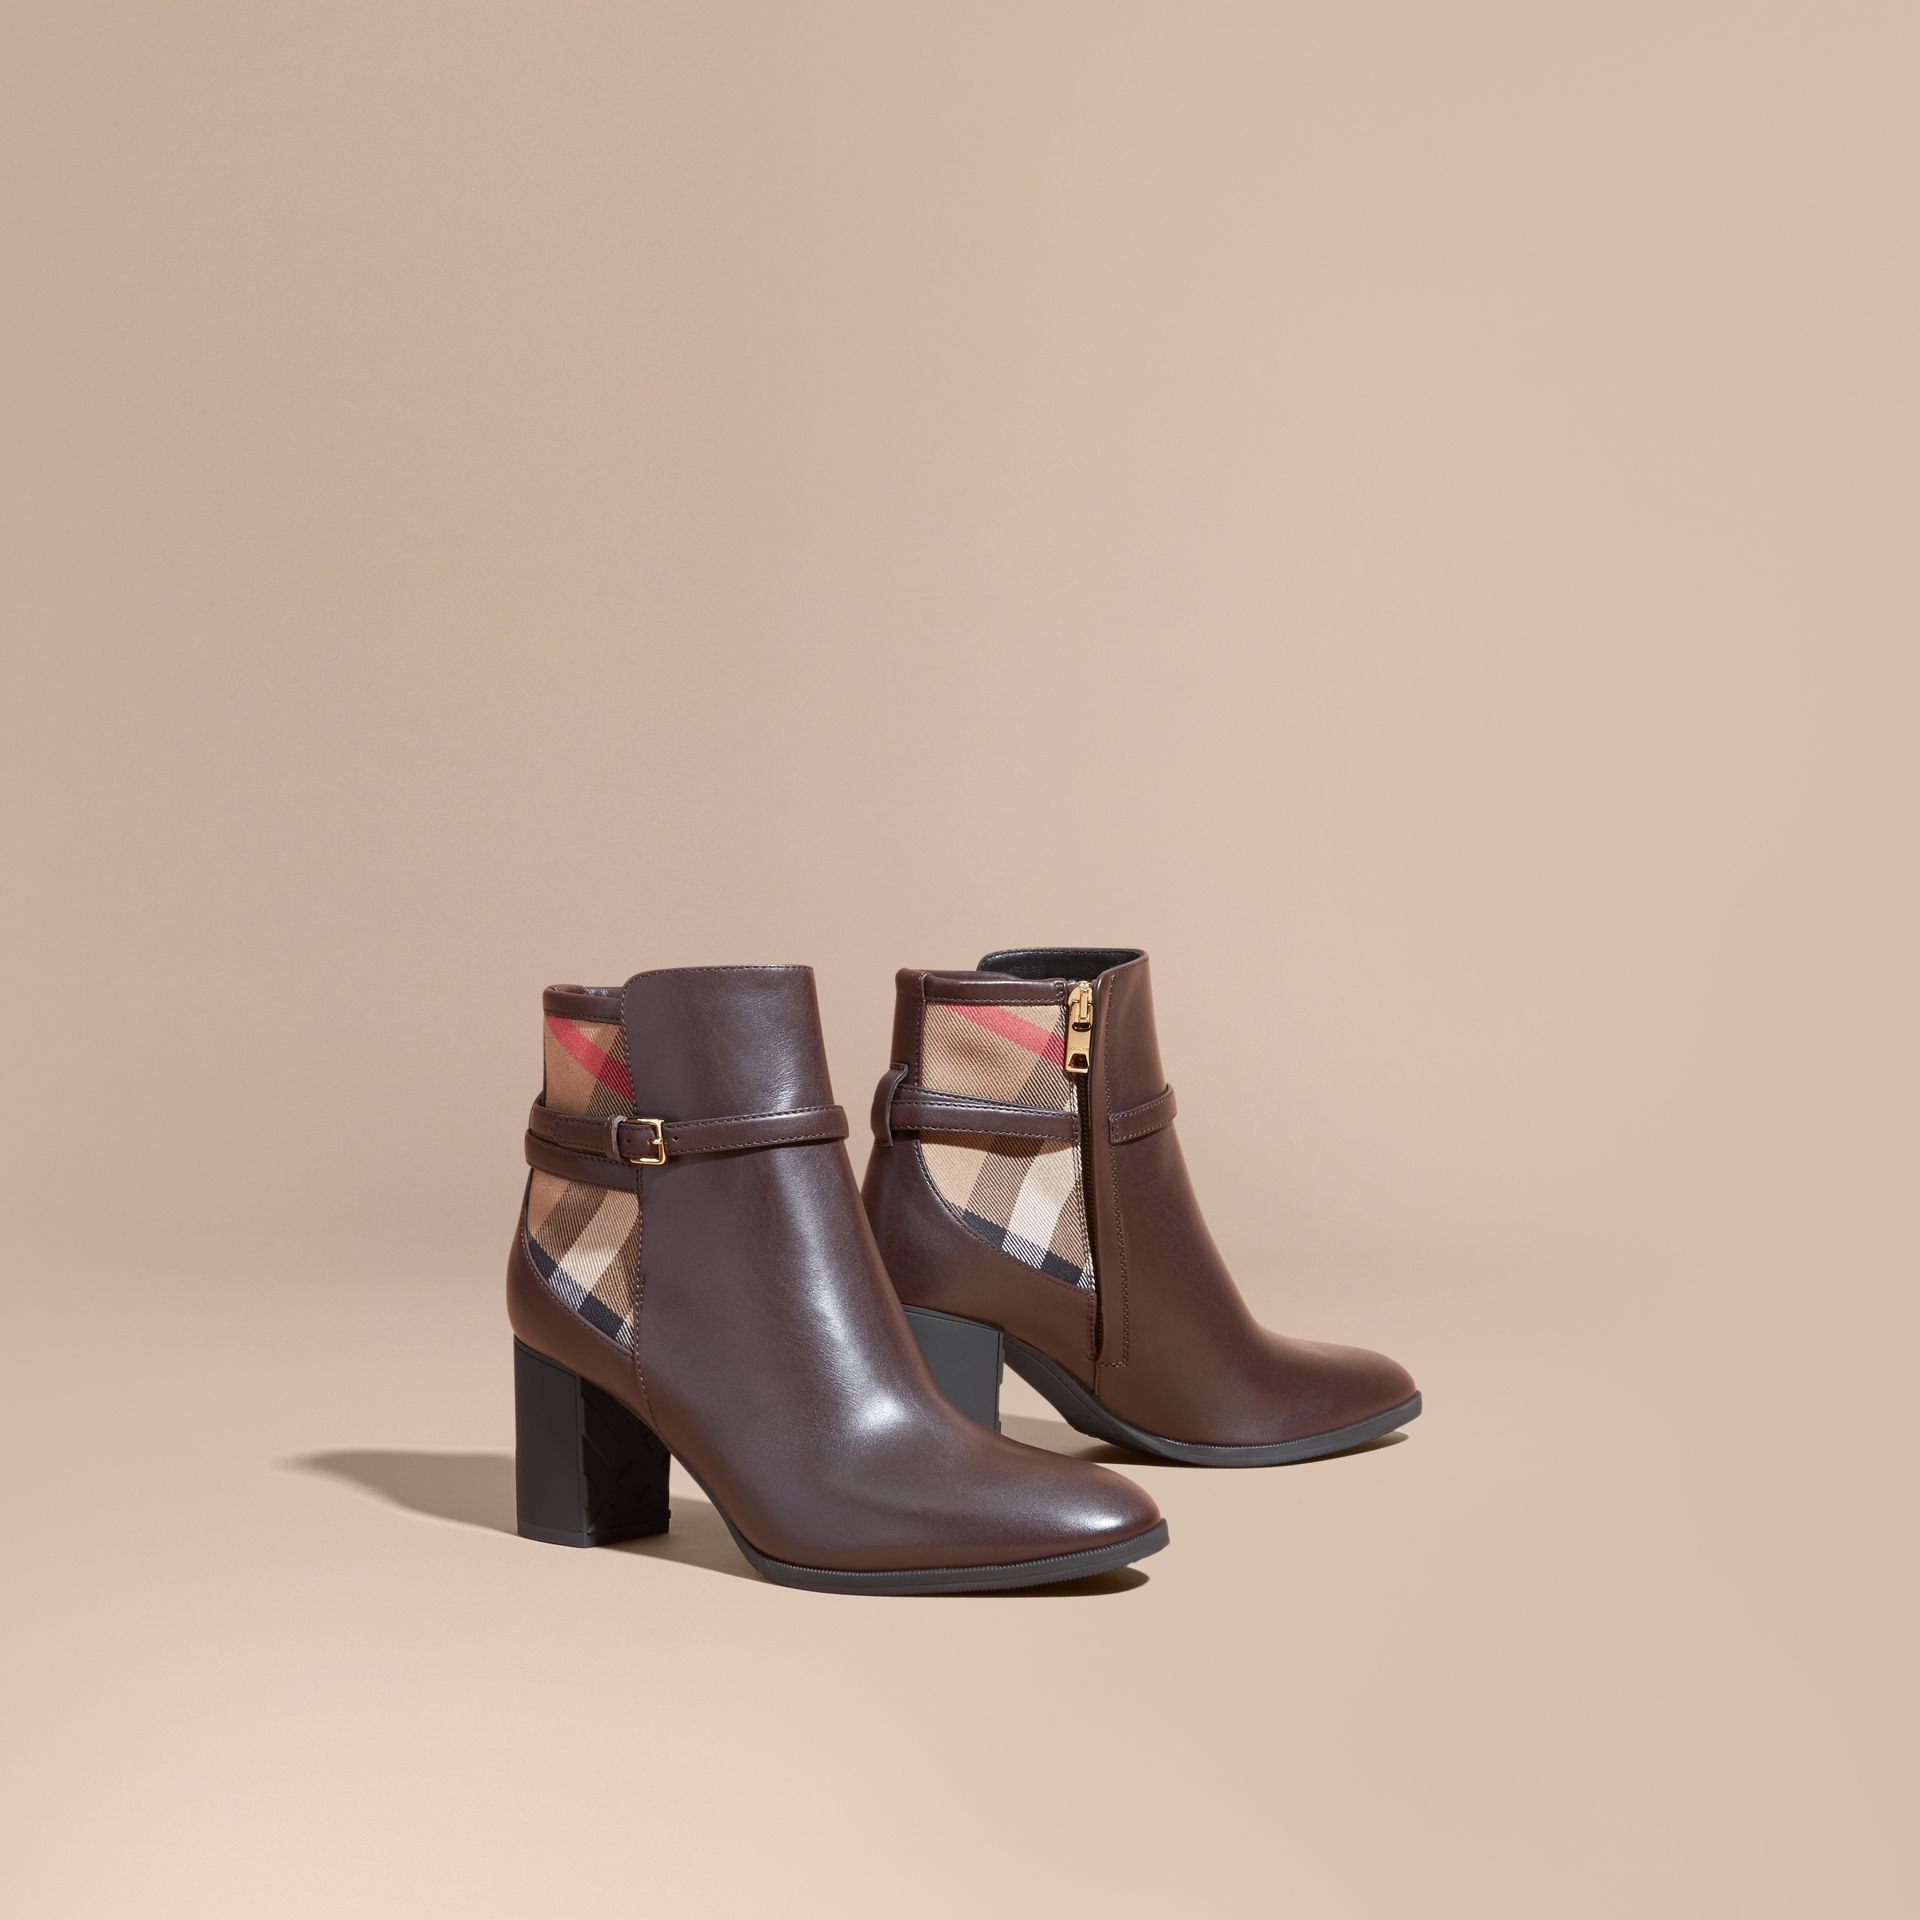 Noisette Bottines en cuir et coton House check Noisette - photo de la galerie 1